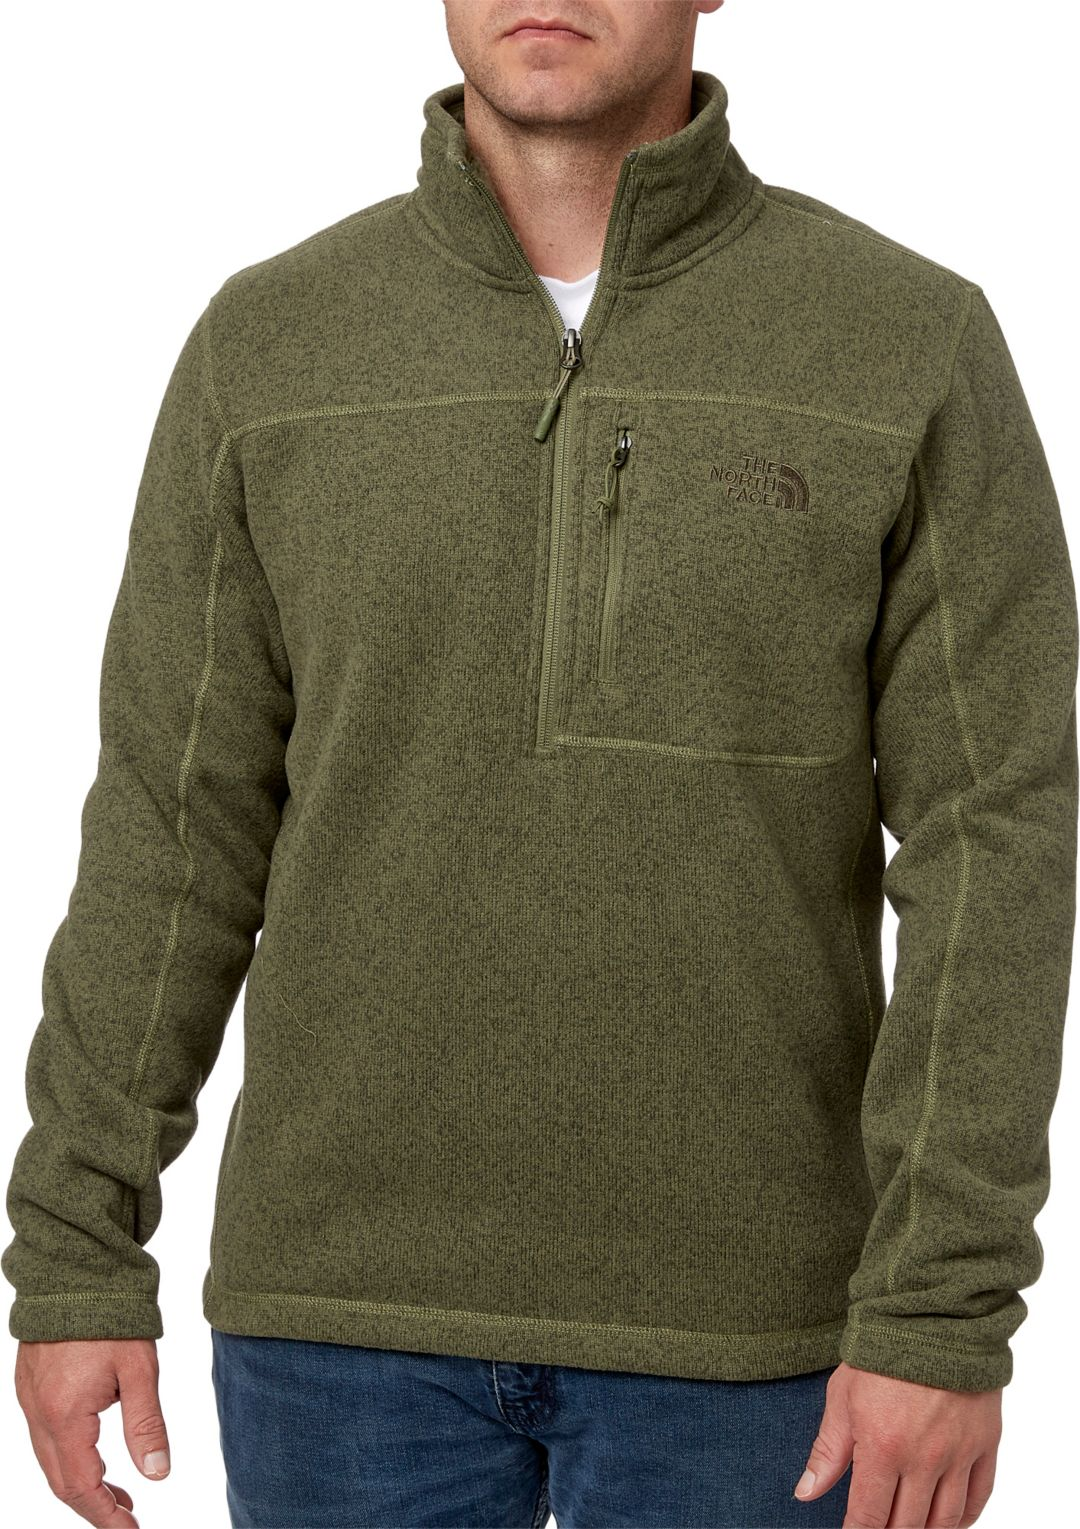 a173e8e048faf8 The North Face Men's Gordon Lyons Quarter Zip Fleece Pullover ...